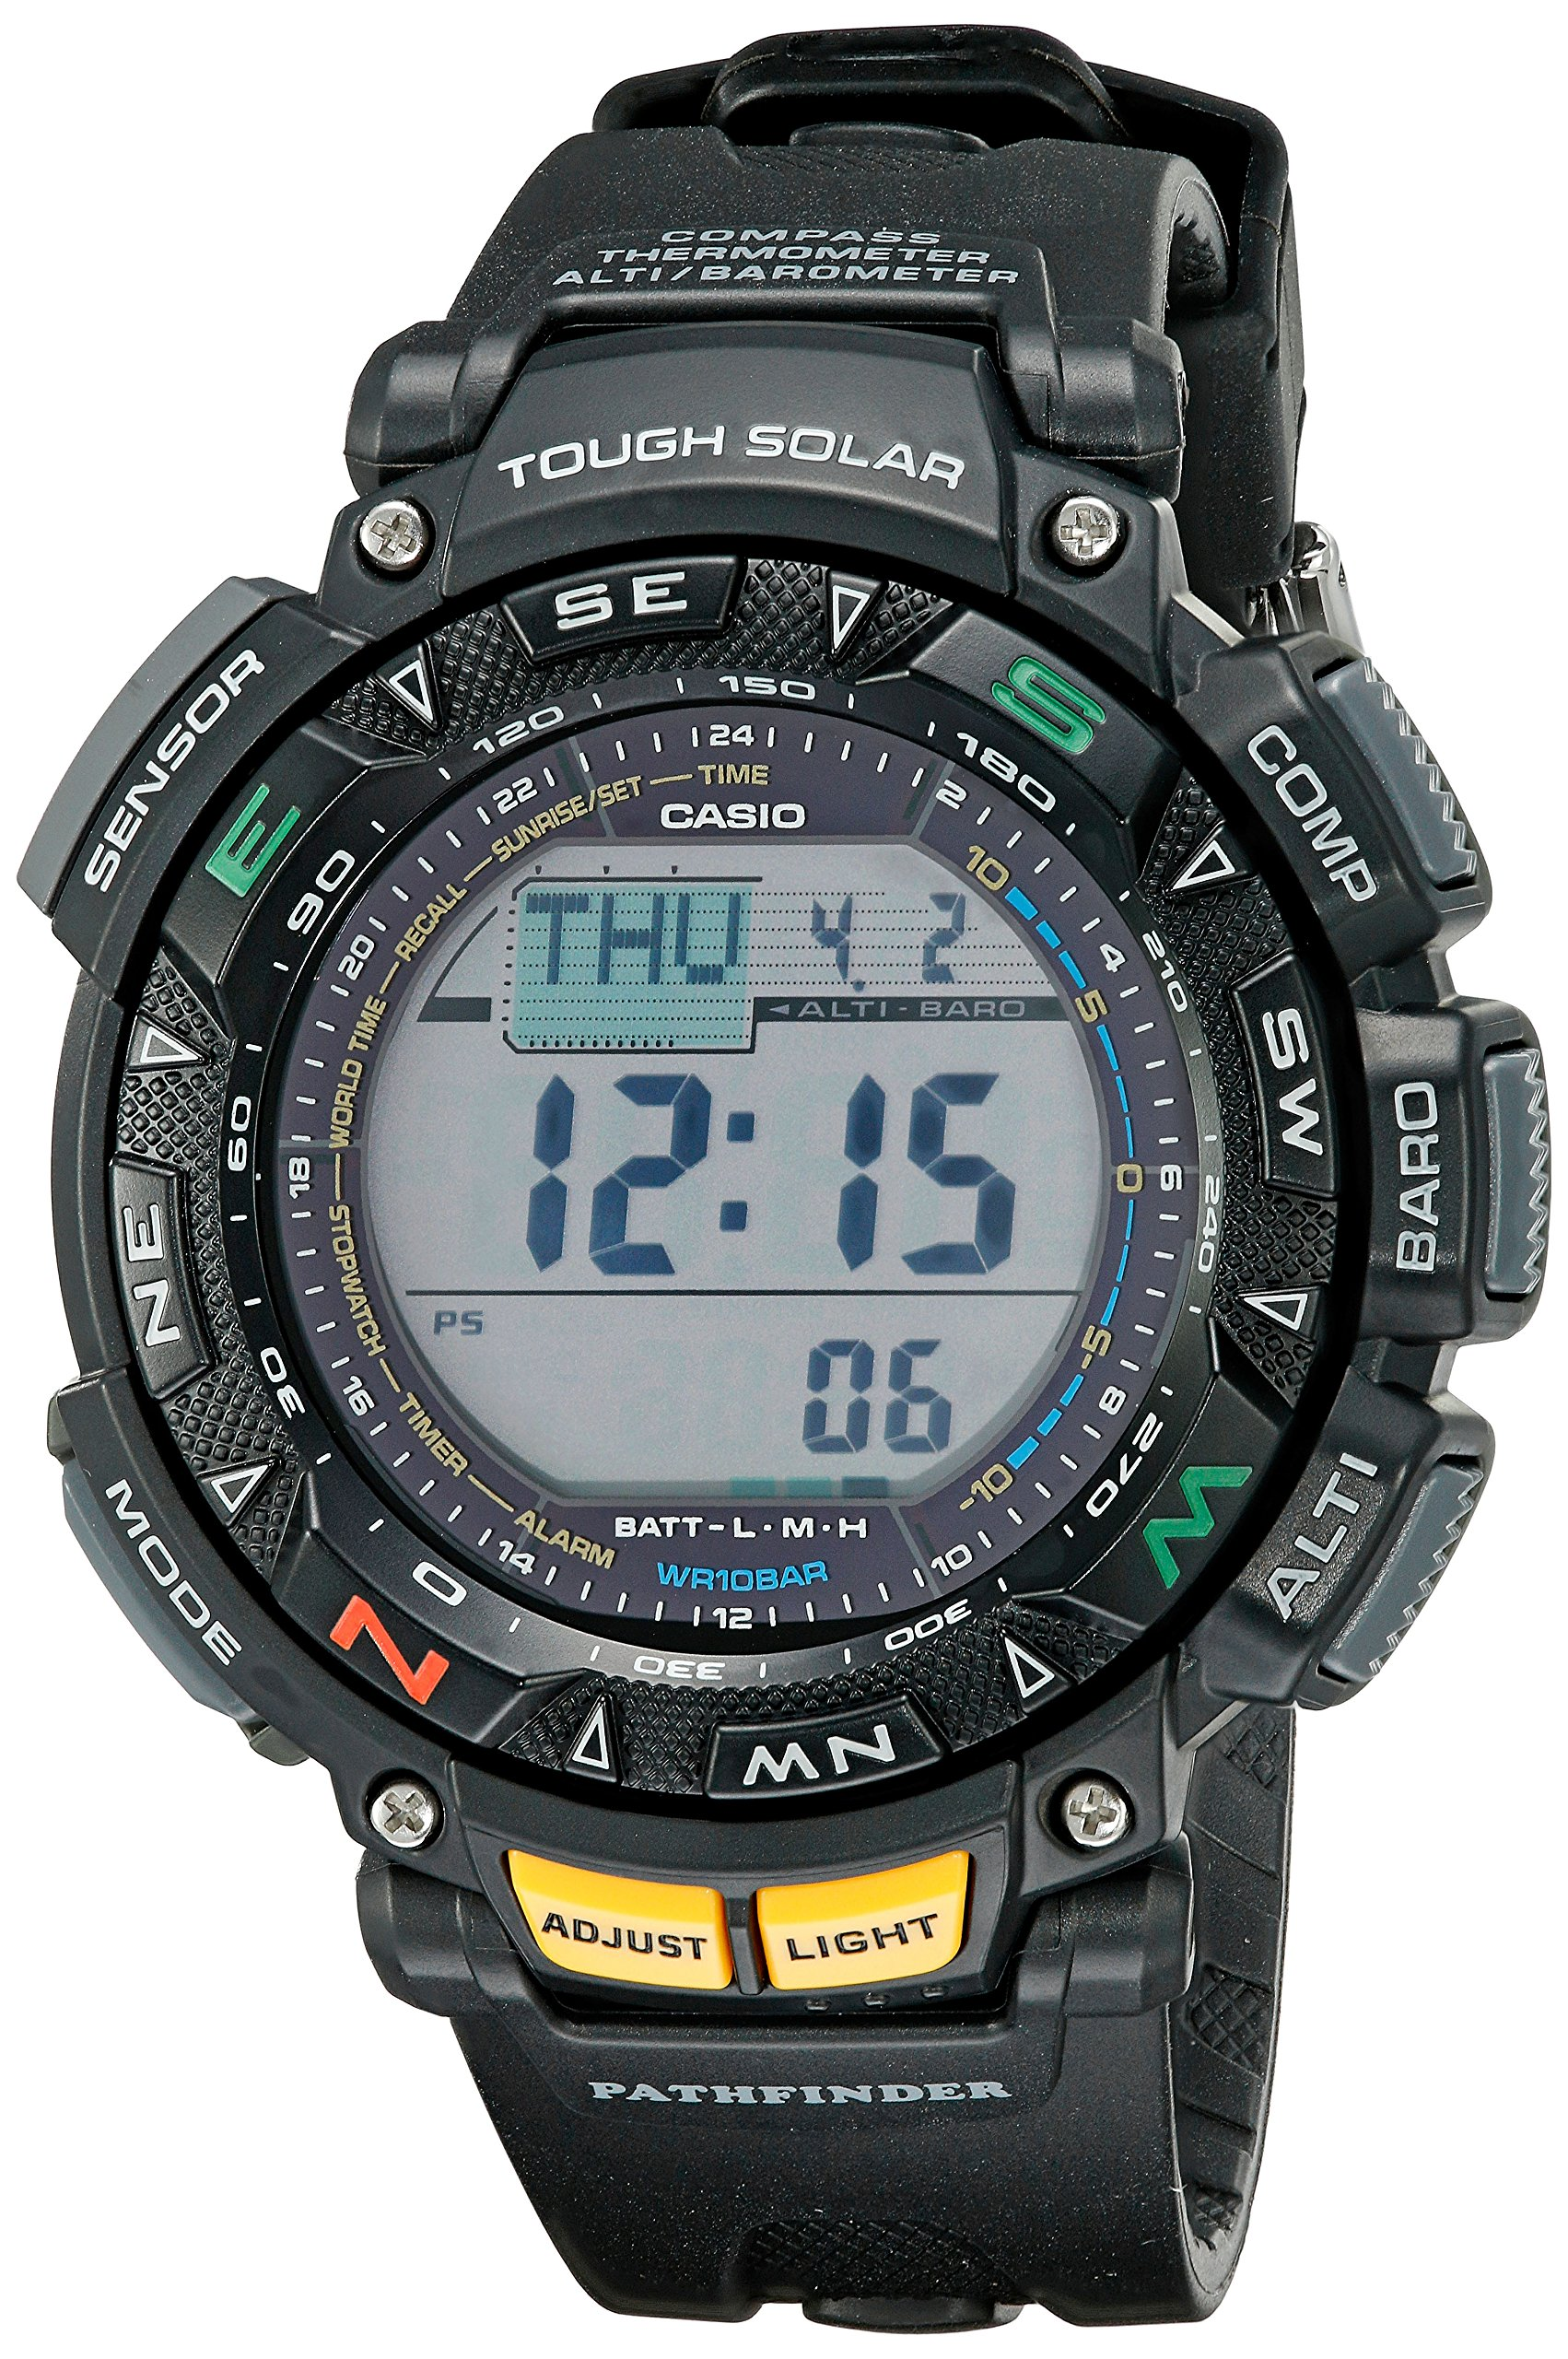 Casio Men's Triple Sensor PAG240-1CR Pathfinder Sport Watch